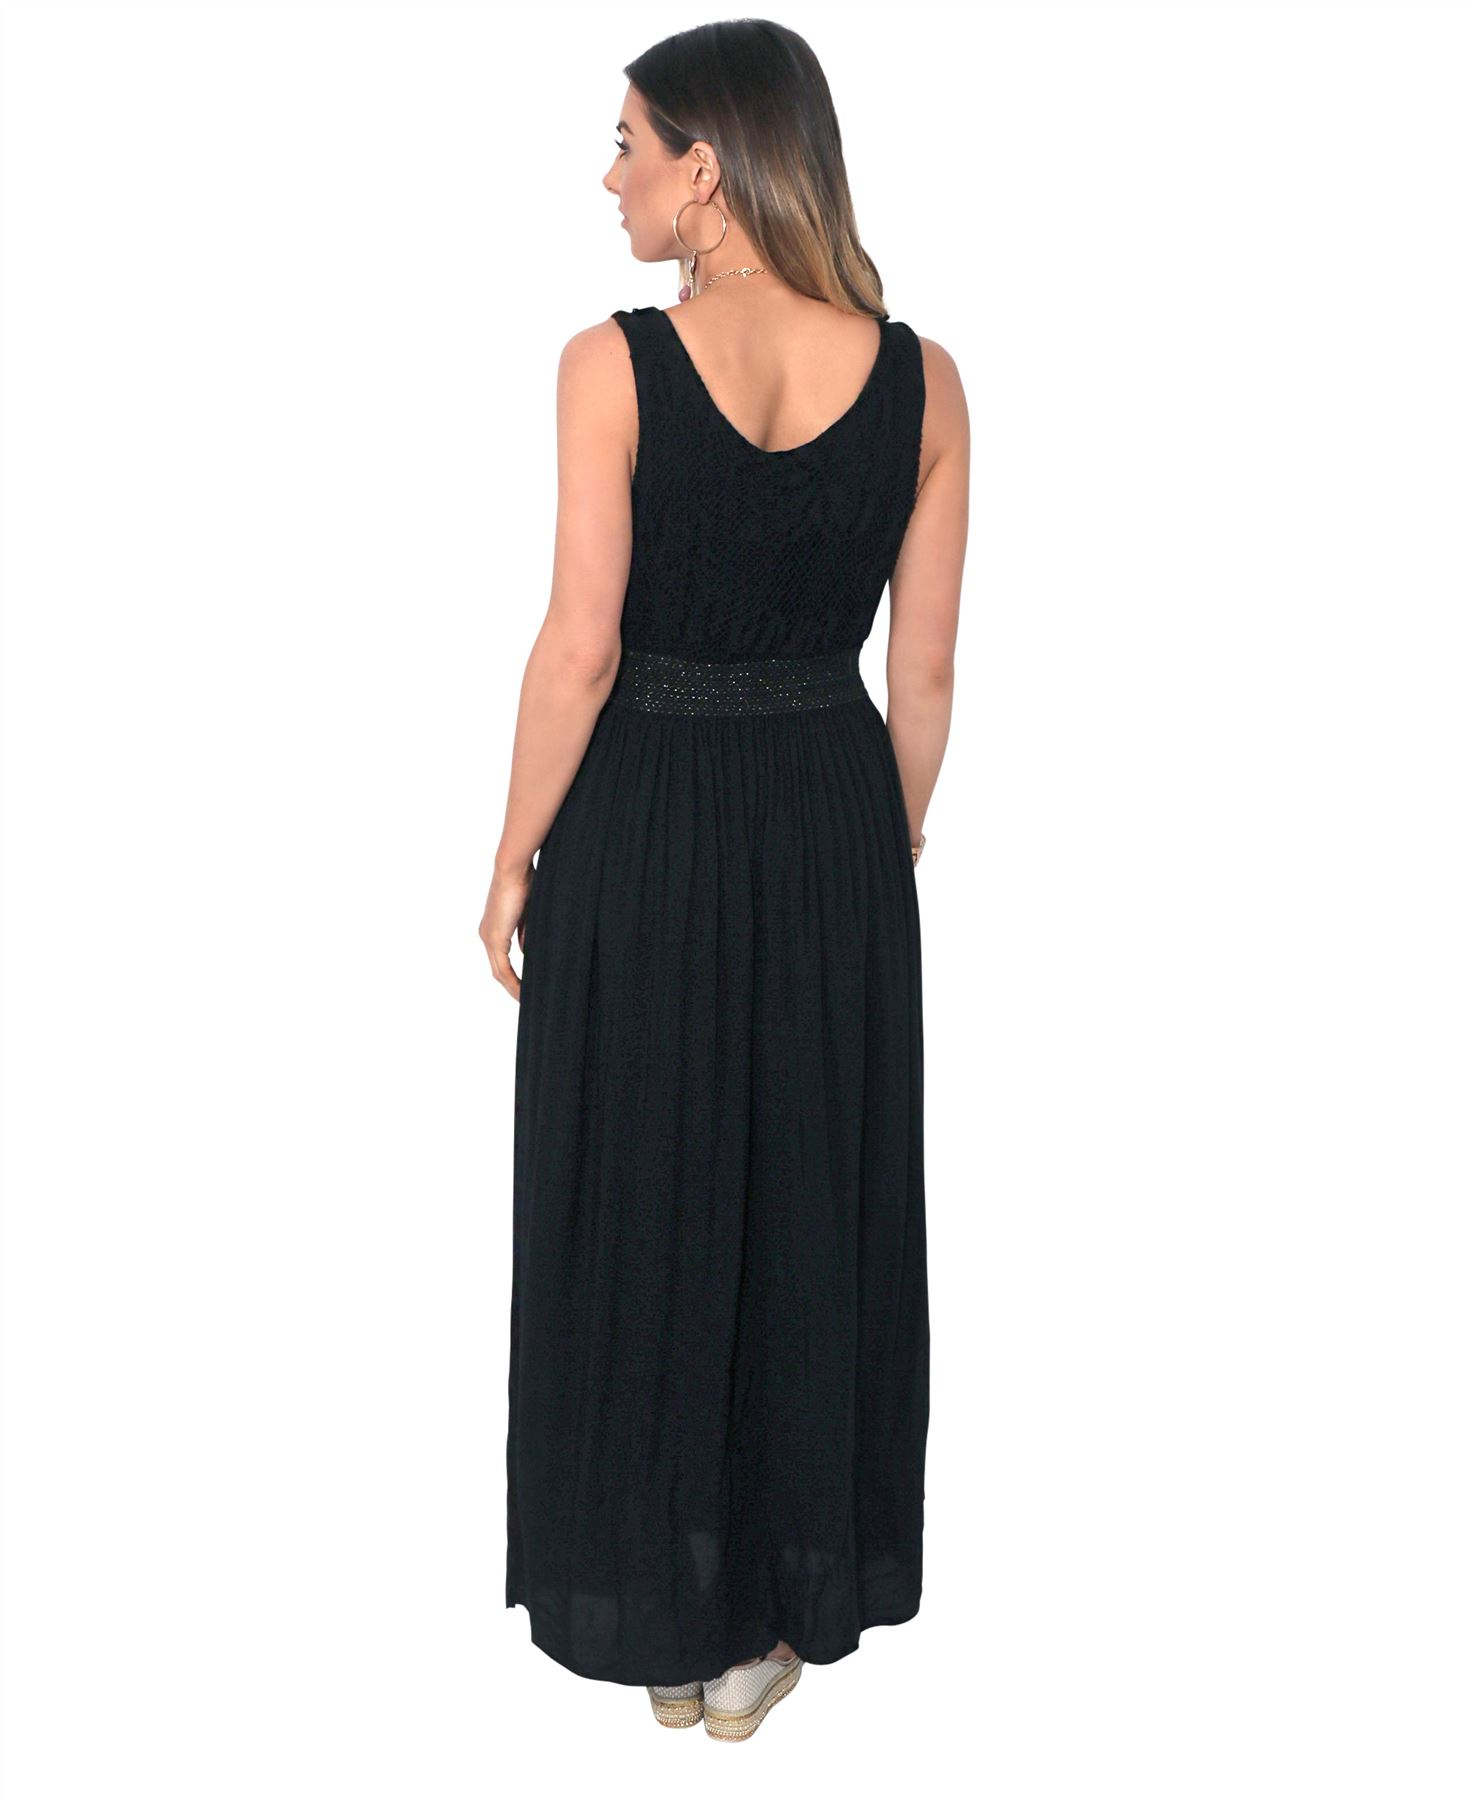 Women-Boho-Maxi-Dress-Gown-Soft-Cotton-Long-Pleated-Flared-Gypsy-Summer-Festival thumbnail 4